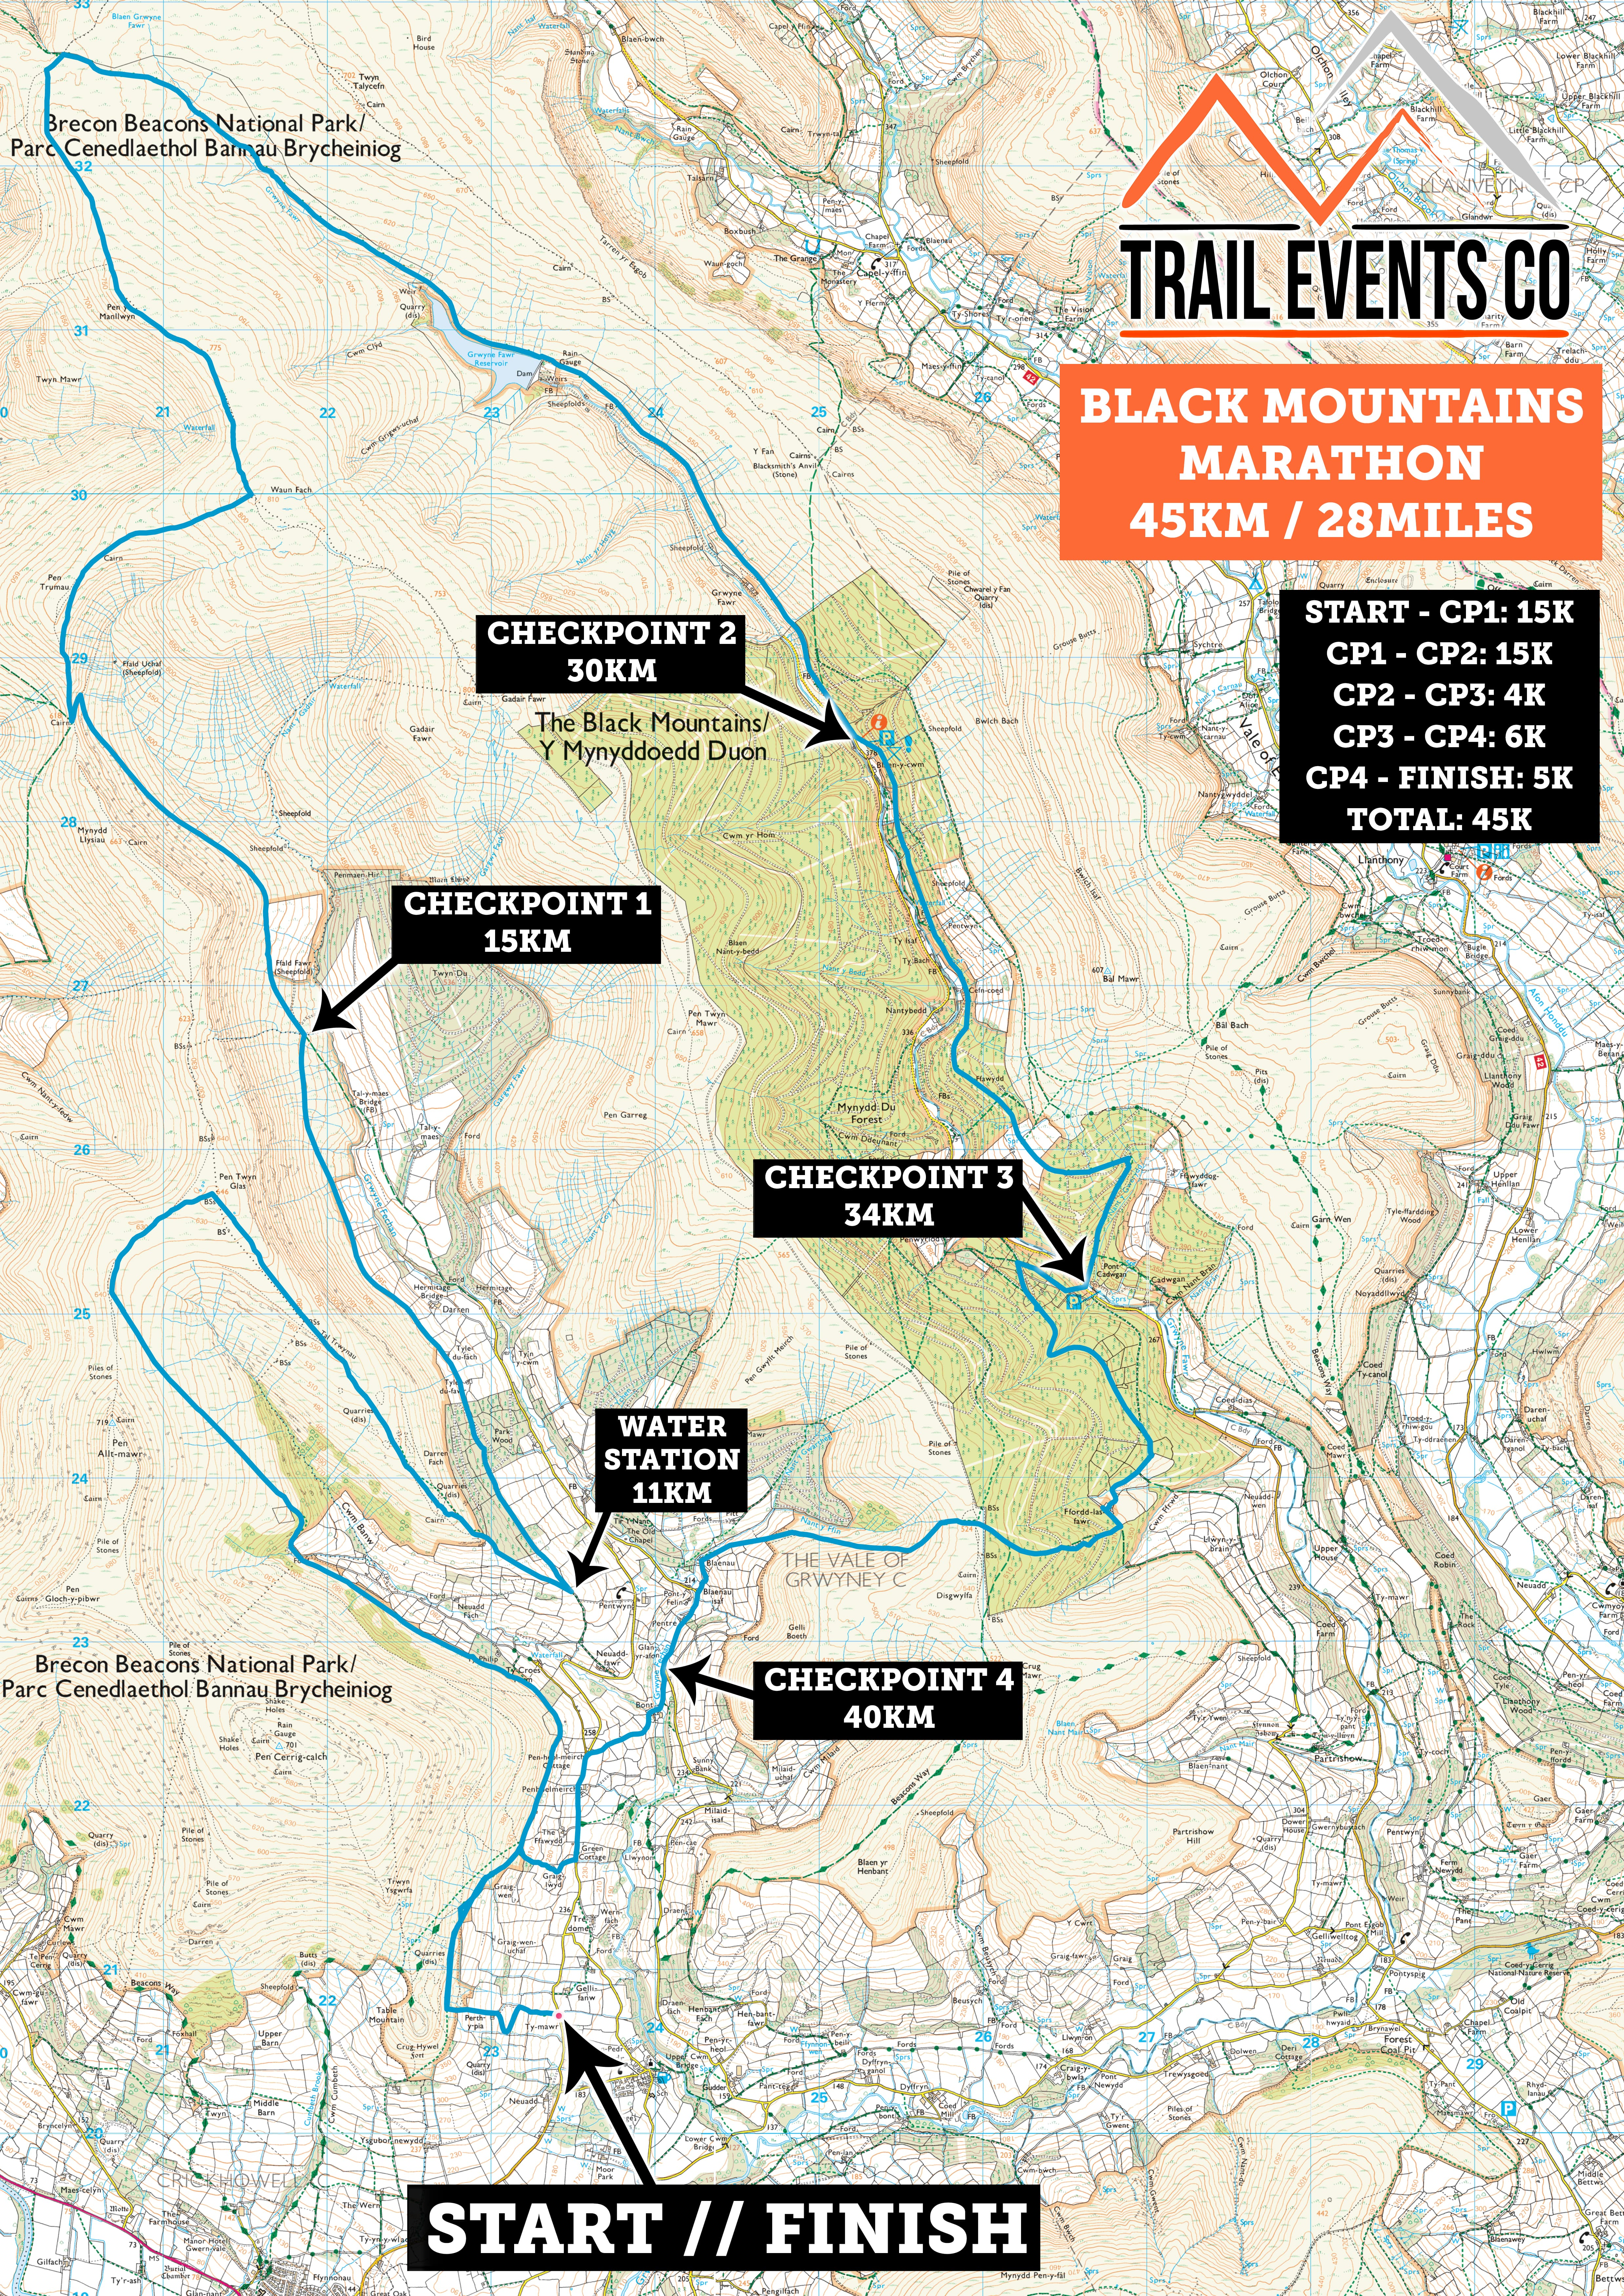 Black Mountains Marathon